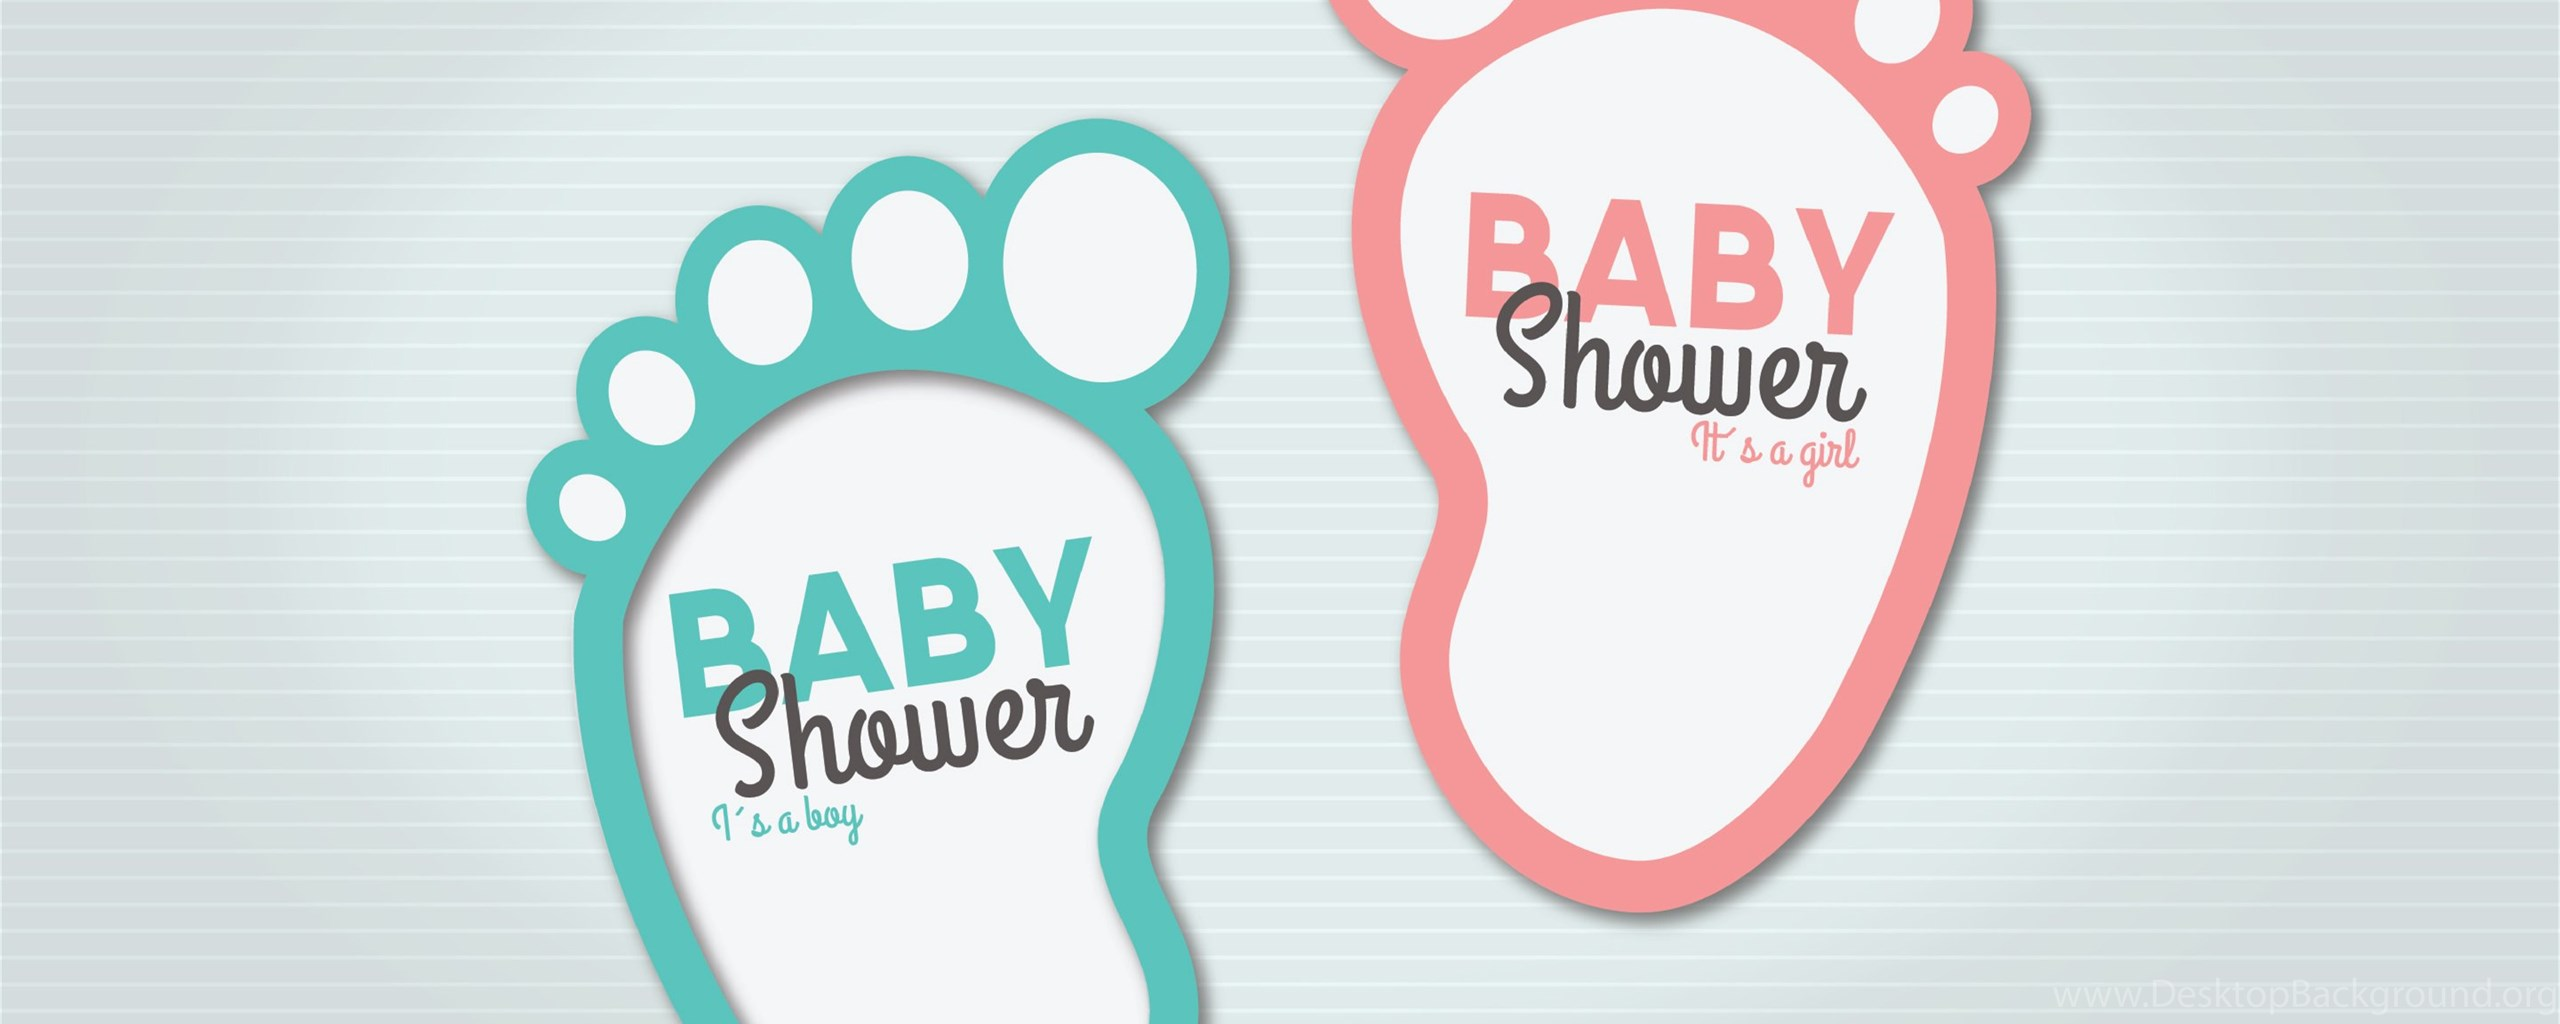 Baby Shower Images And Wallpapers Download Desktop Background